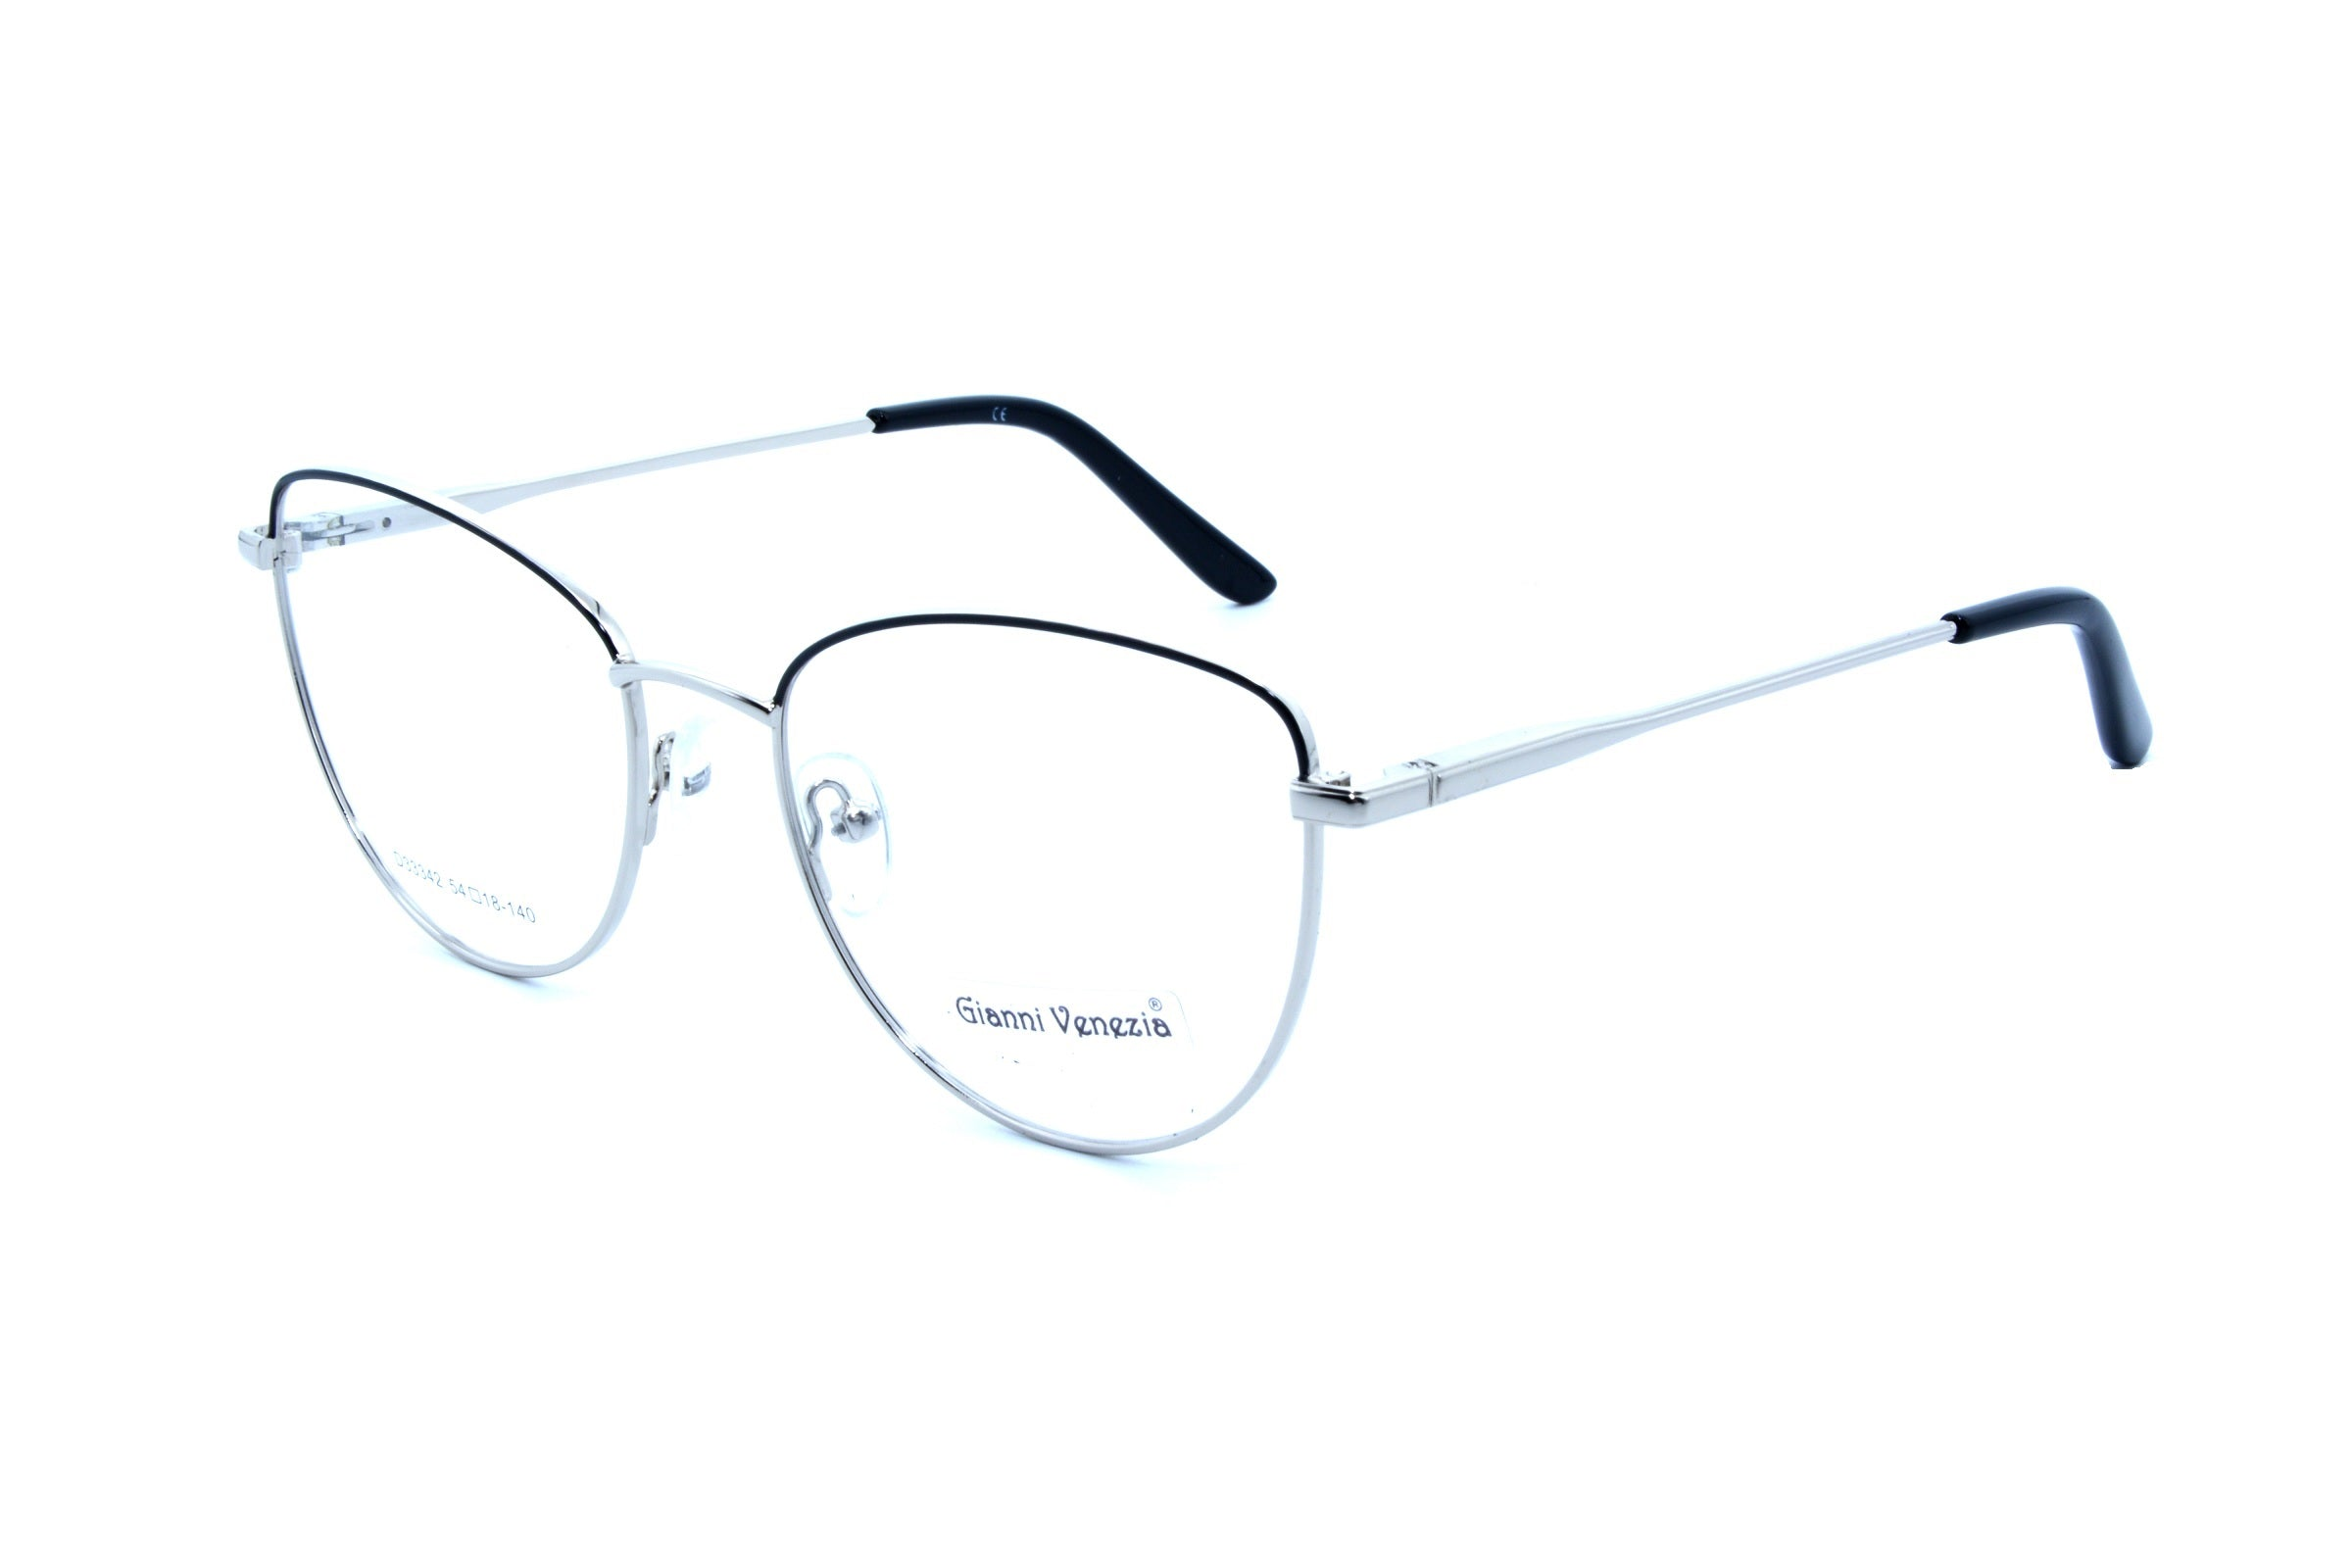 Gianni Venezia eyewear D33342, C1 - Optics Trading